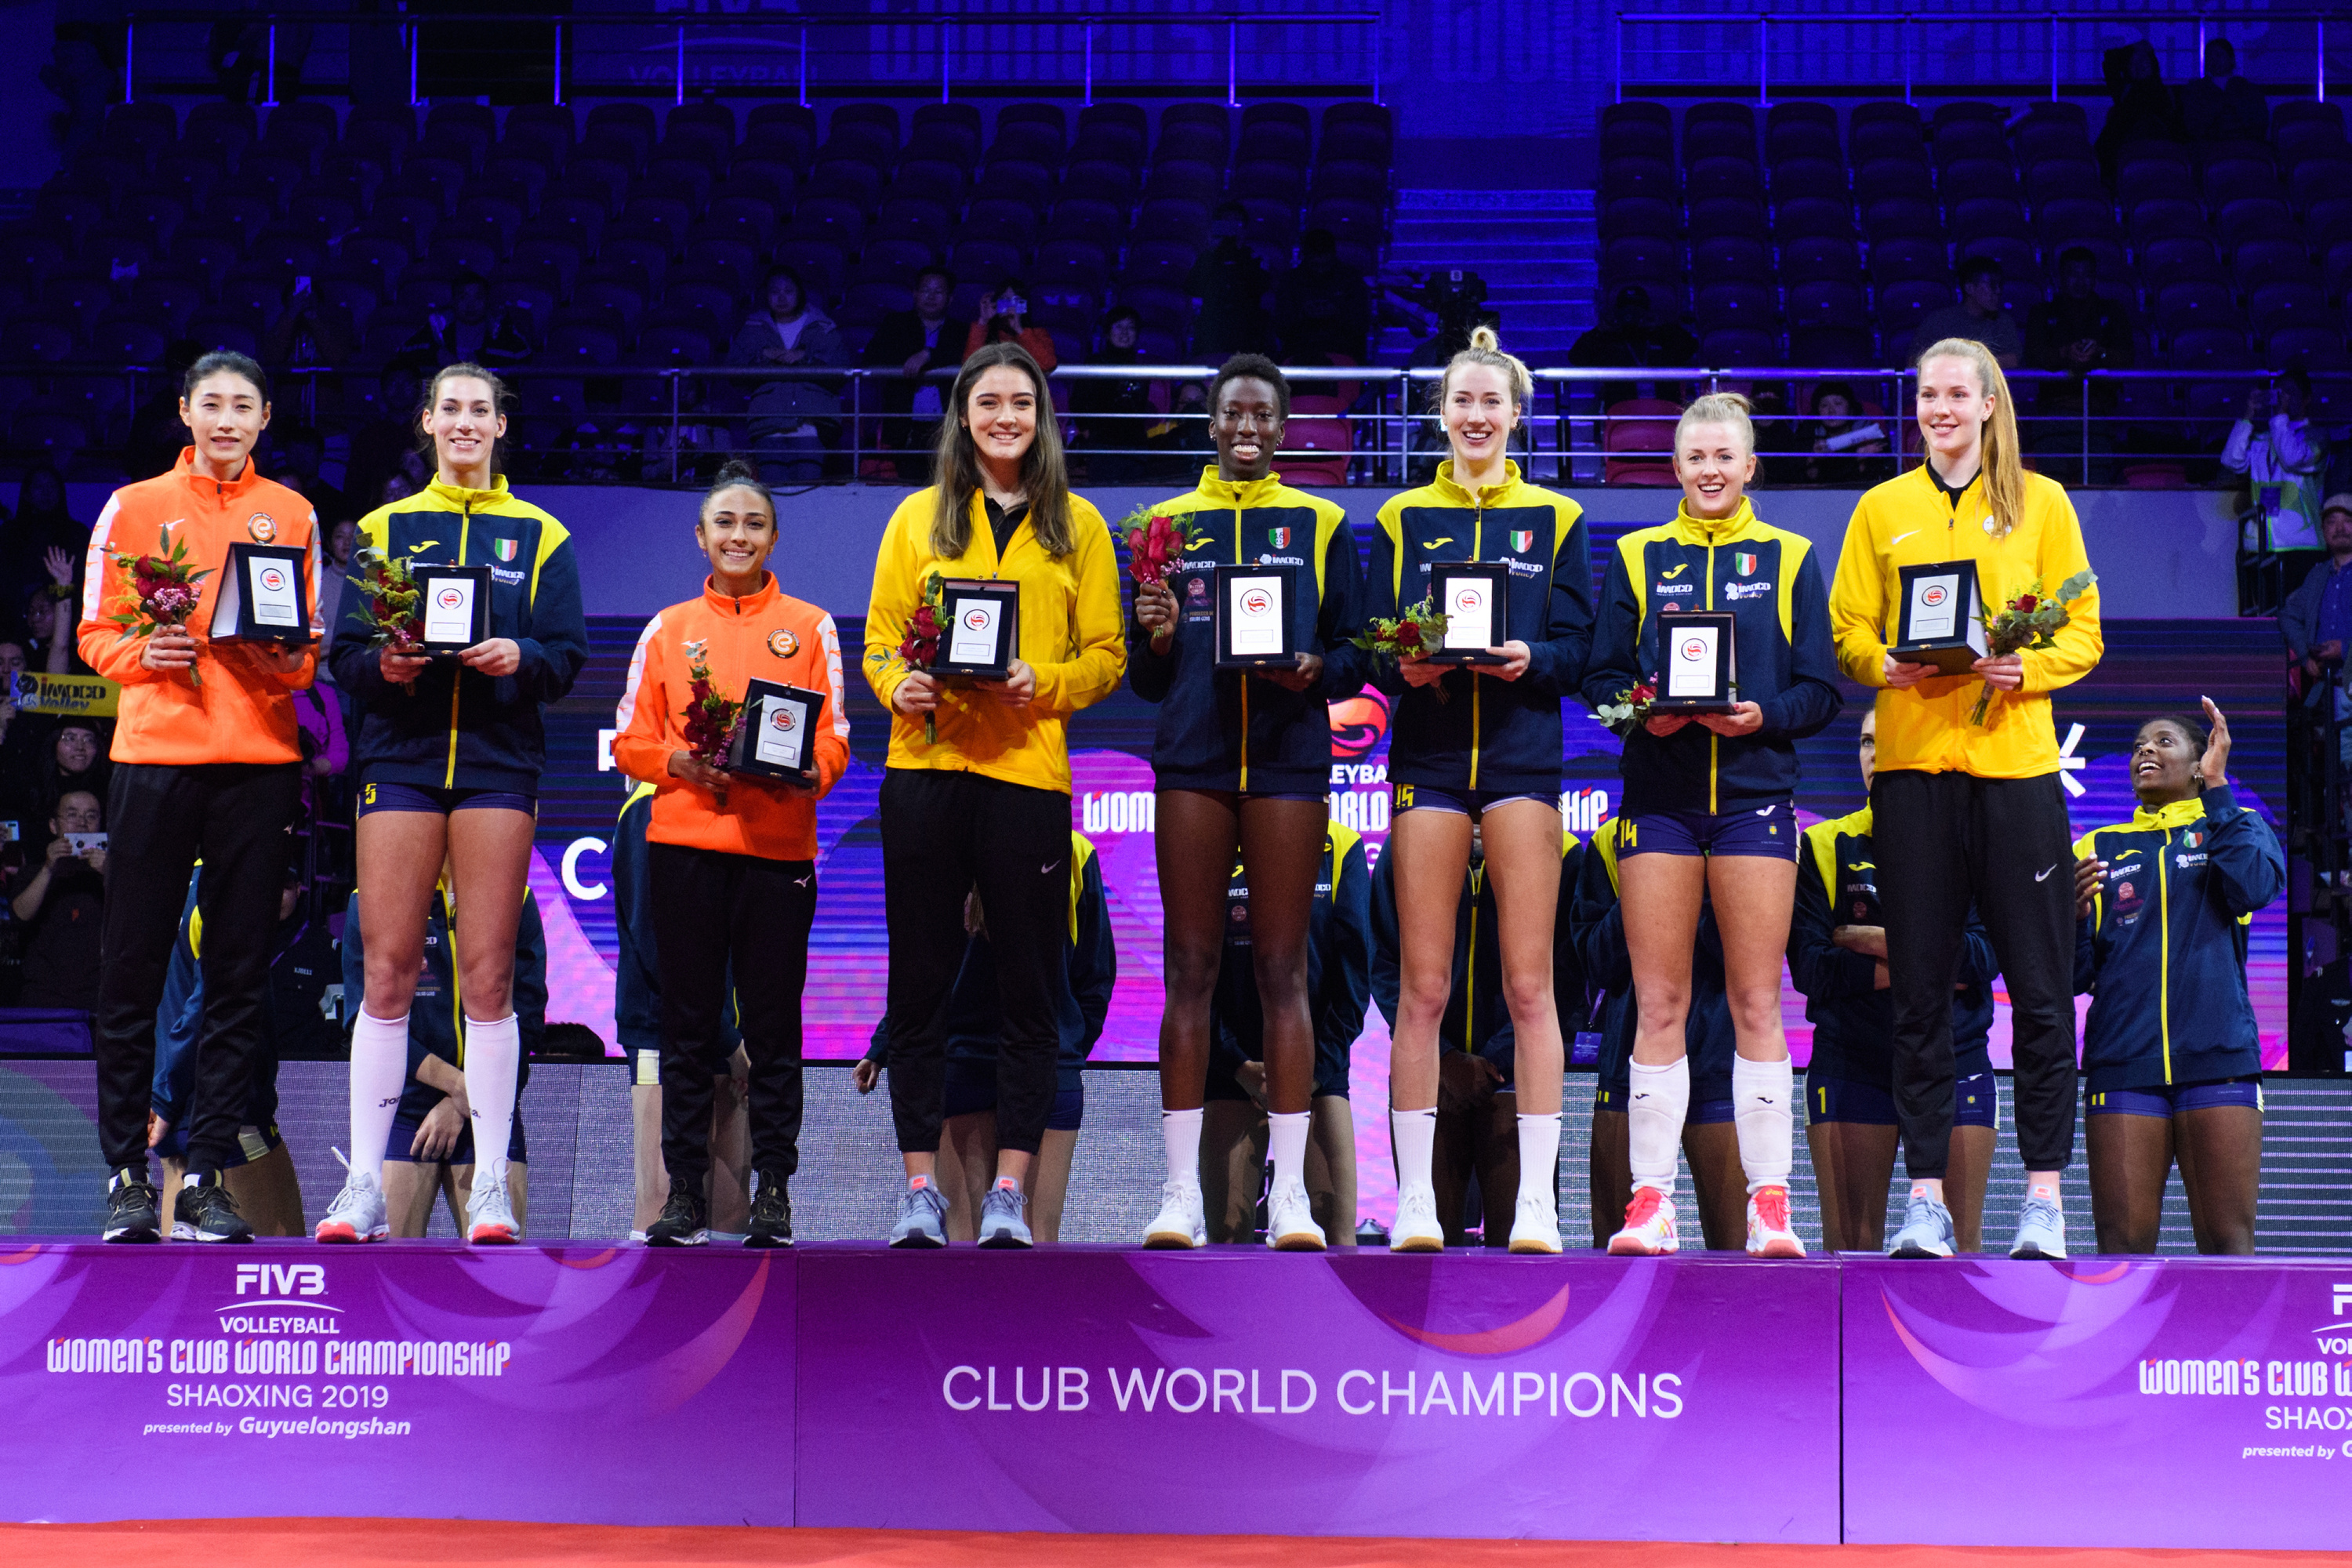 News Egonu Reigns As Mvp Of The 2019 Women S Club World Championship